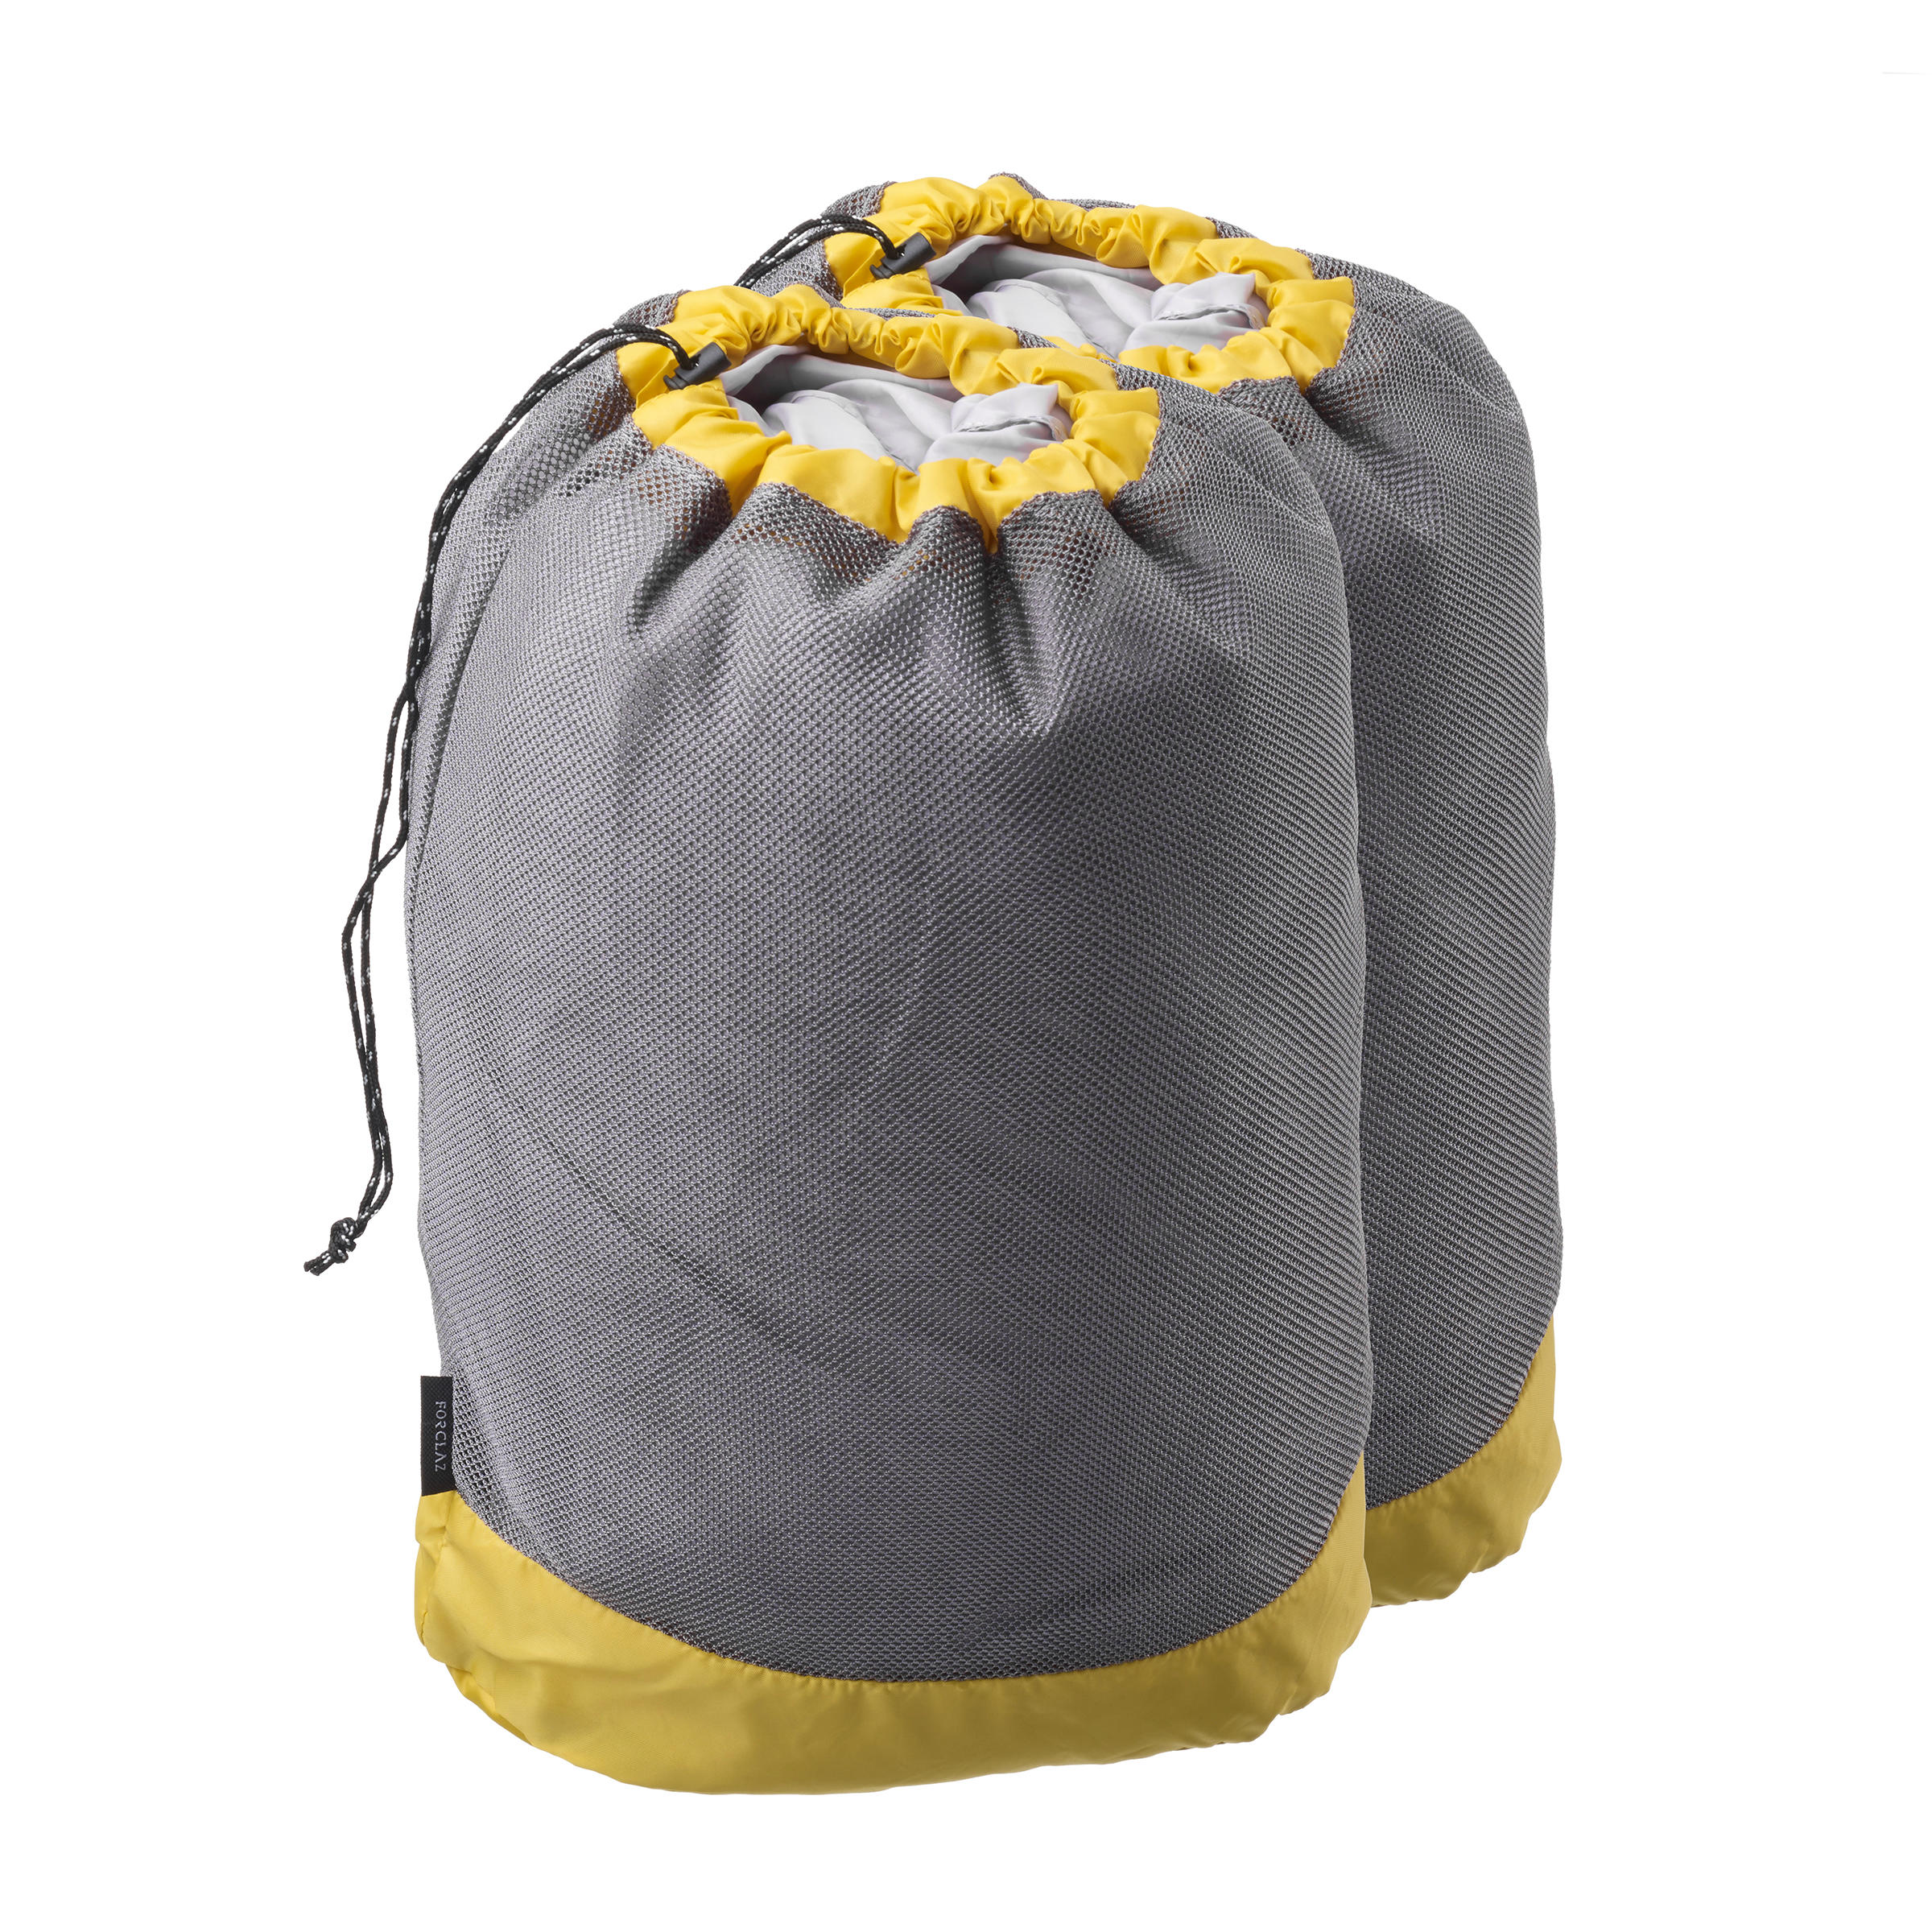 Pack of 2 Ventilated Hiking Storage Bags